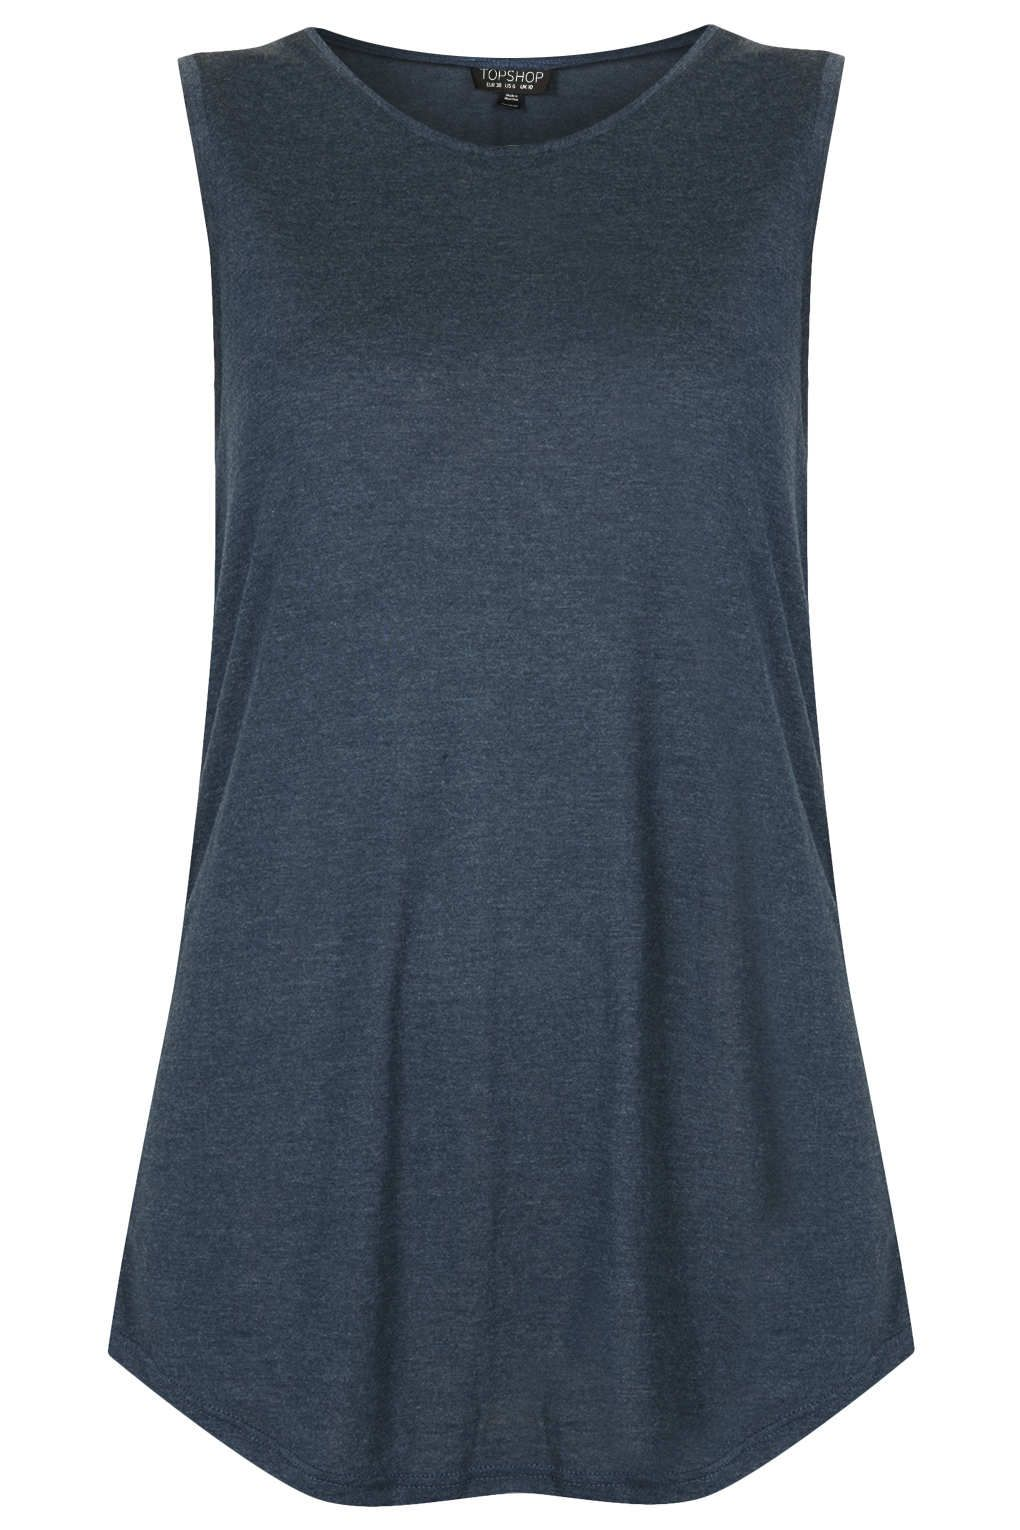 Viscose Tank - Tops - Clothing - Topshop